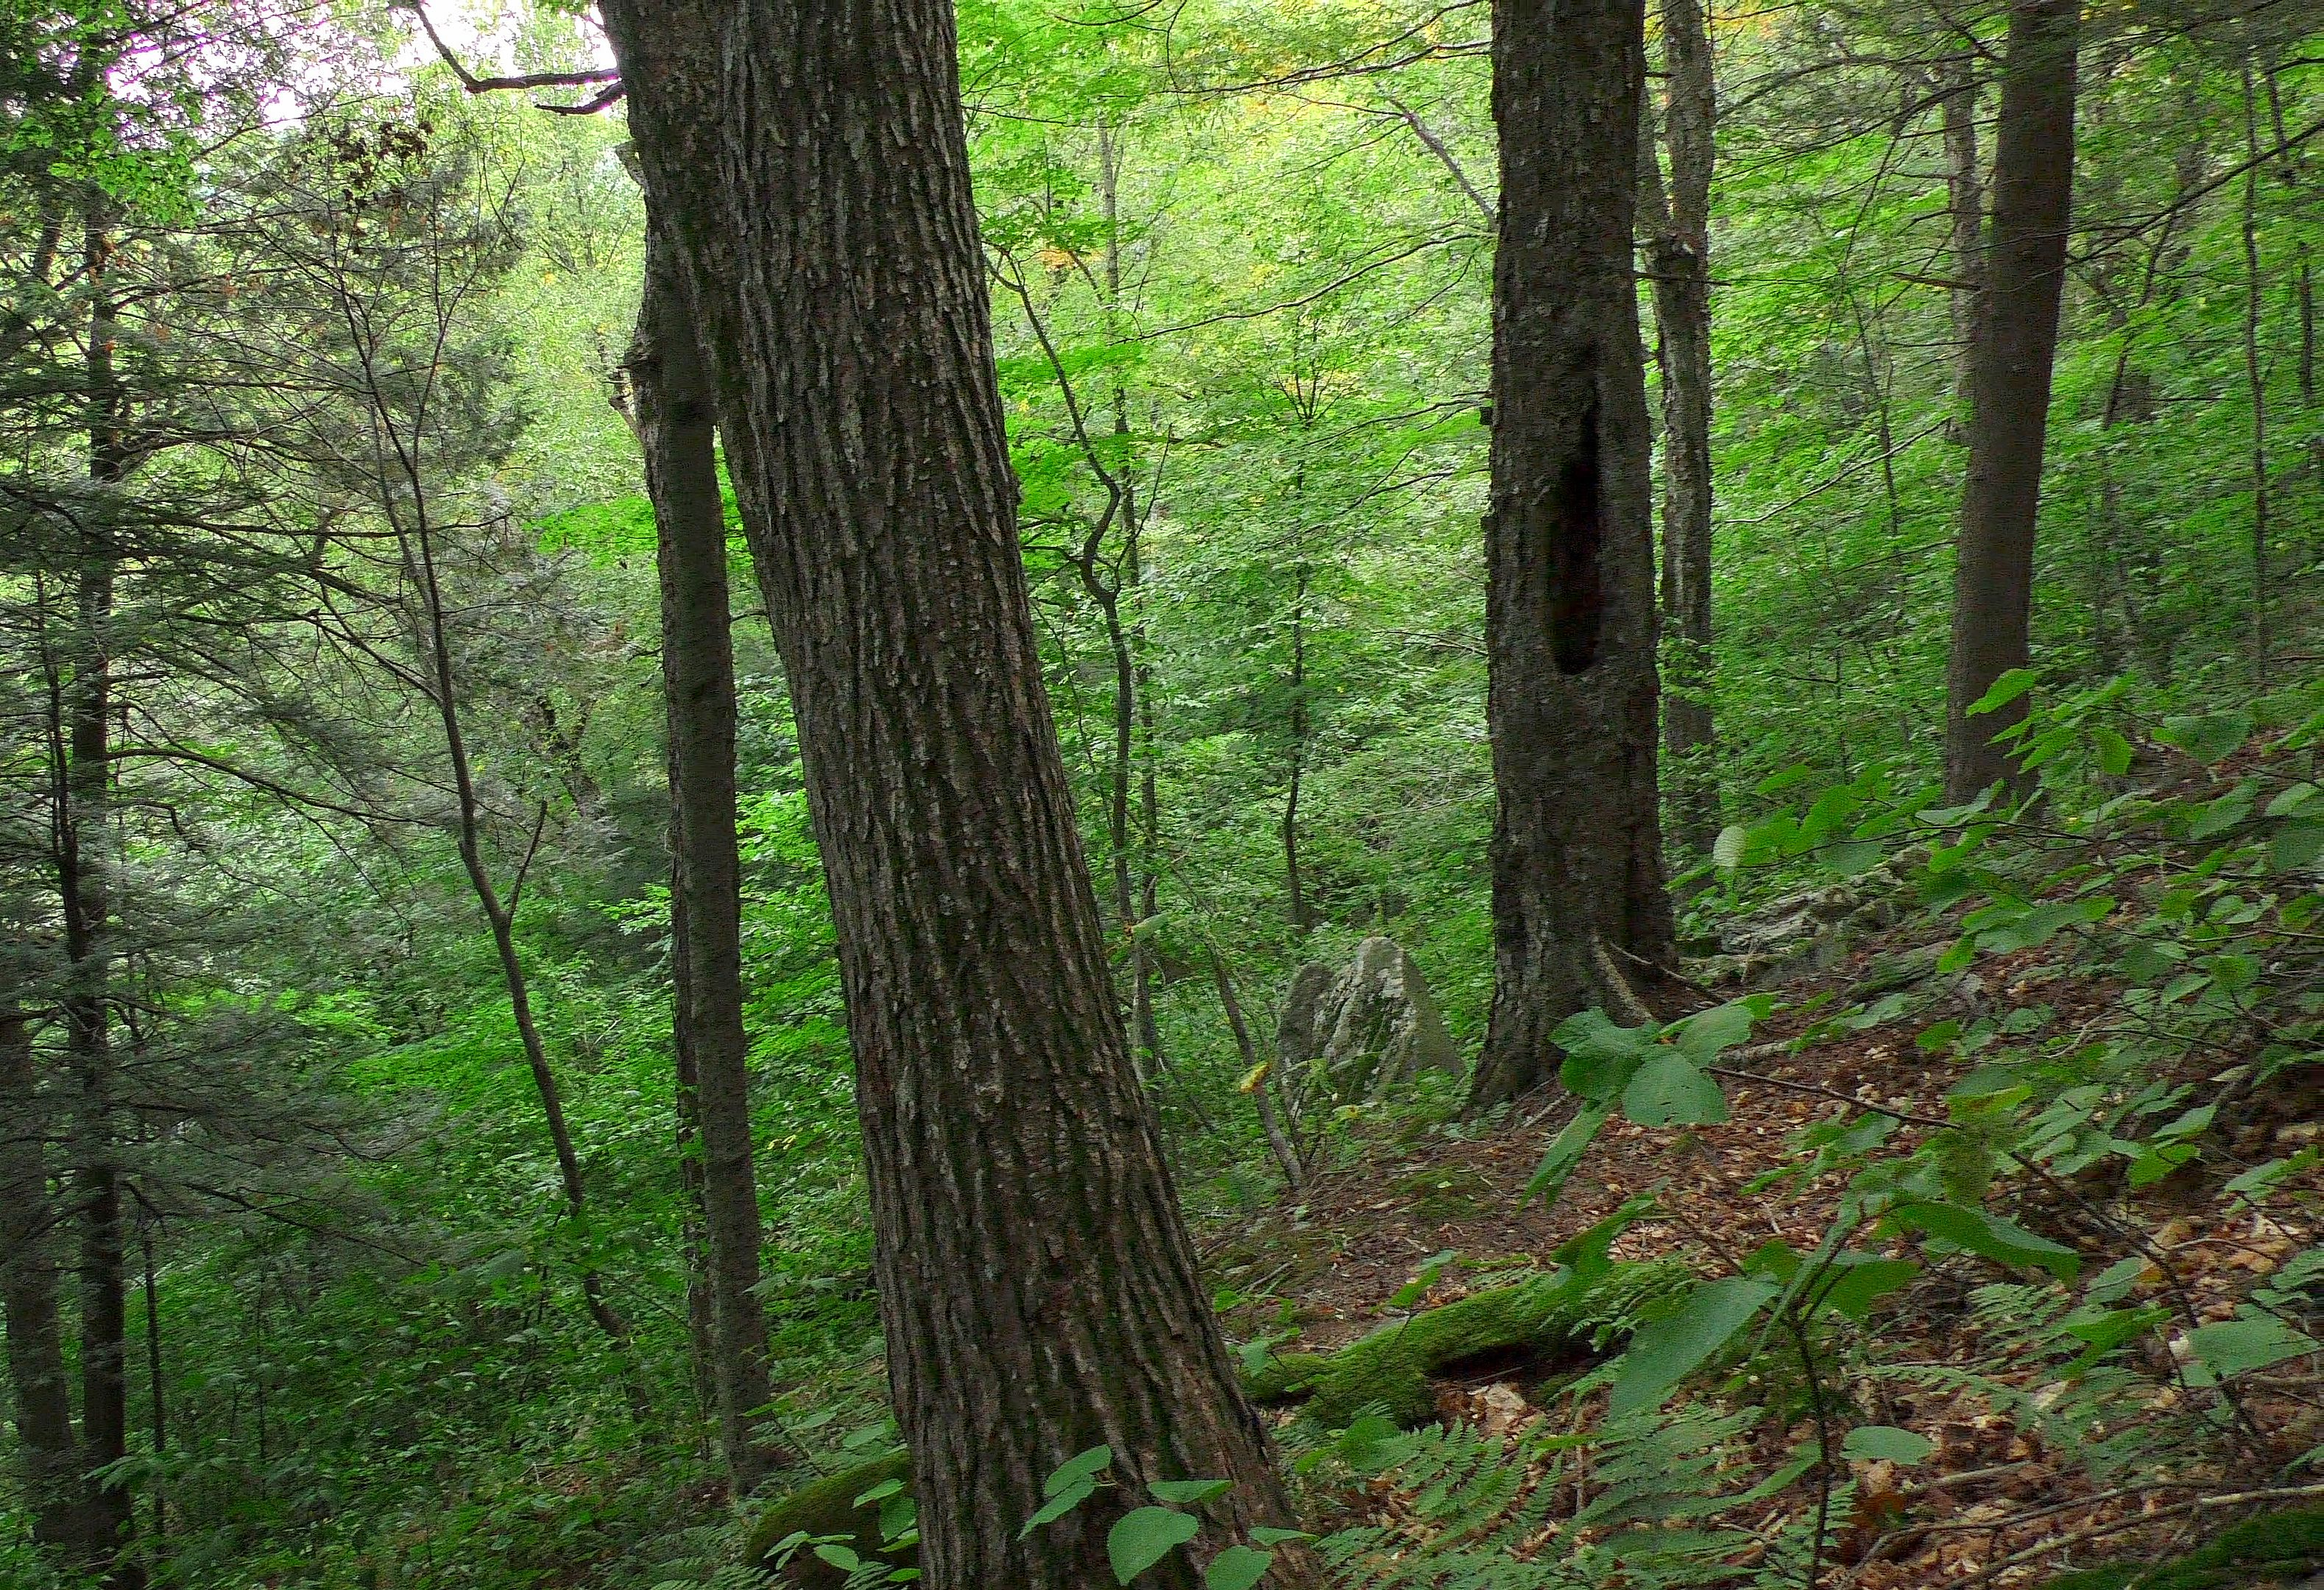 Western Mass mountainside old growth forest. Ray Asselin, New England Forests.